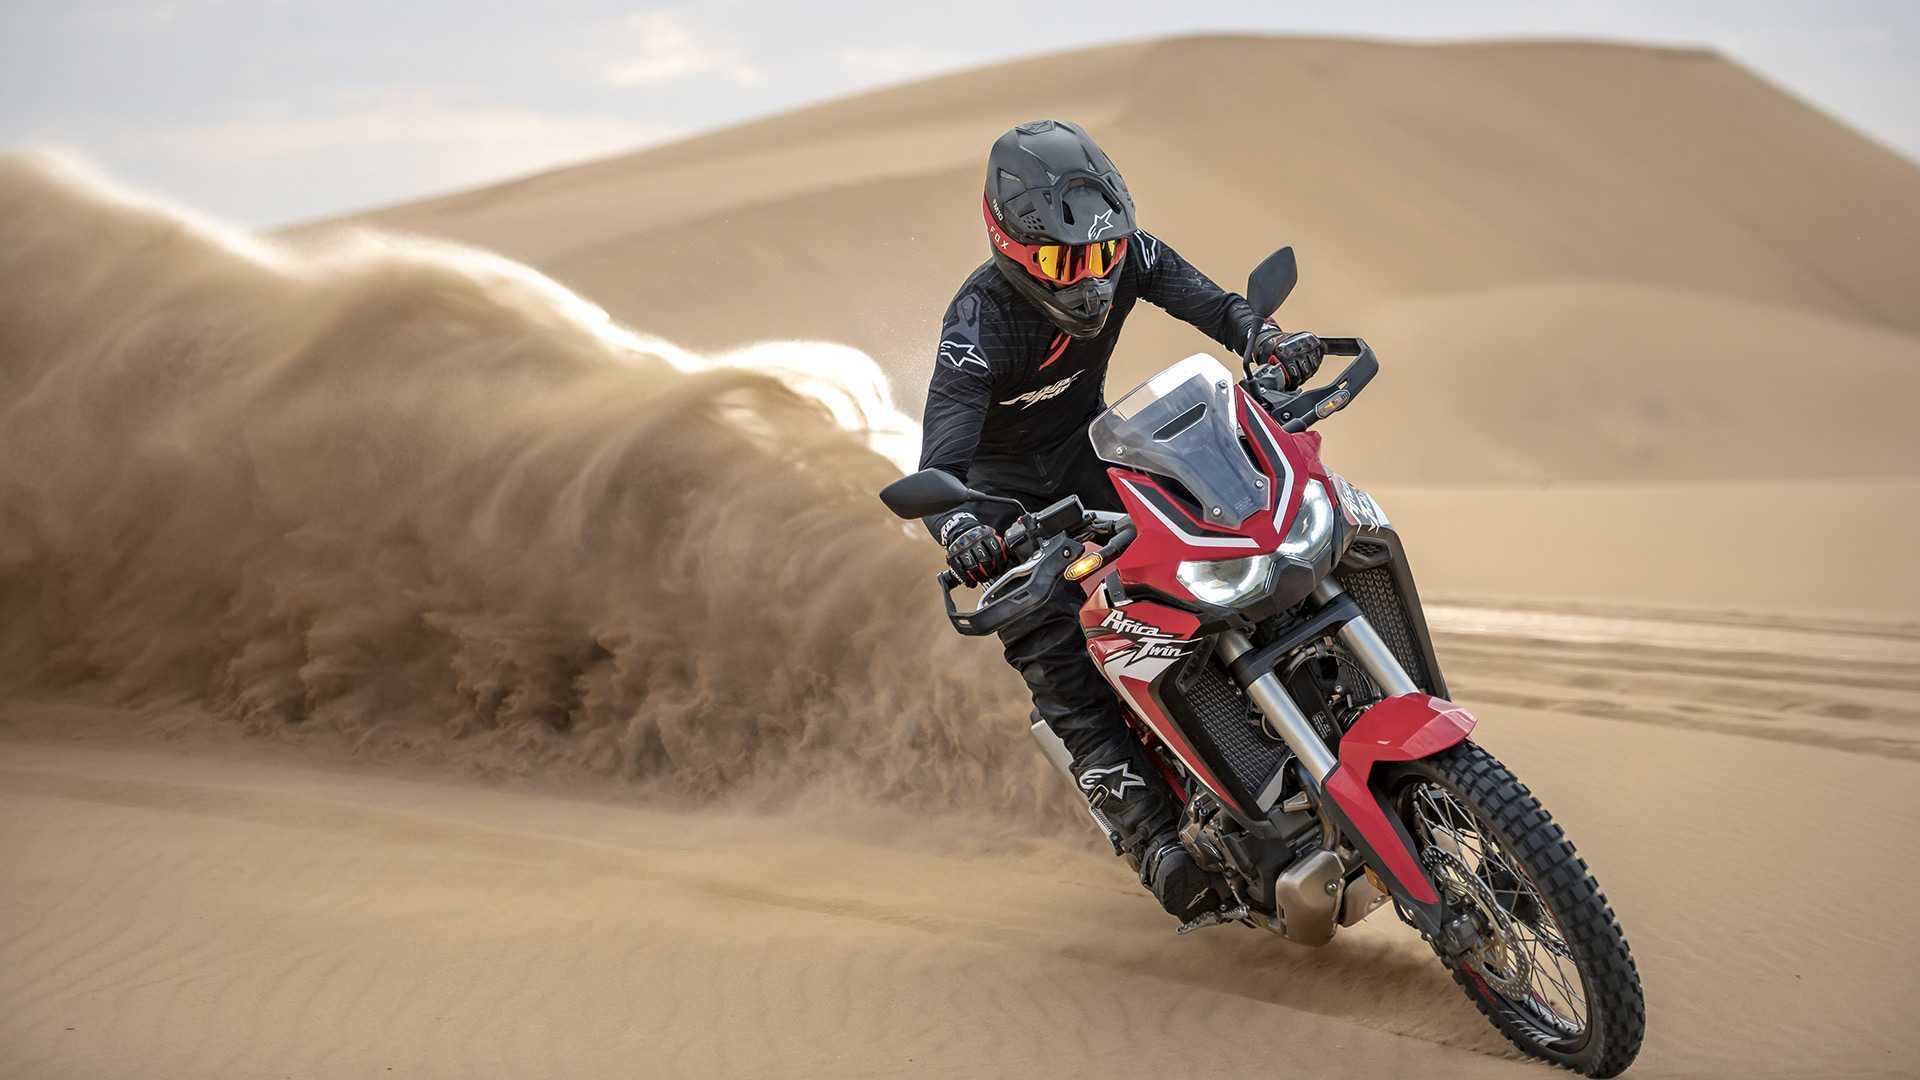 The New Full-Size Adventure Bikes We're Expecting For 2020